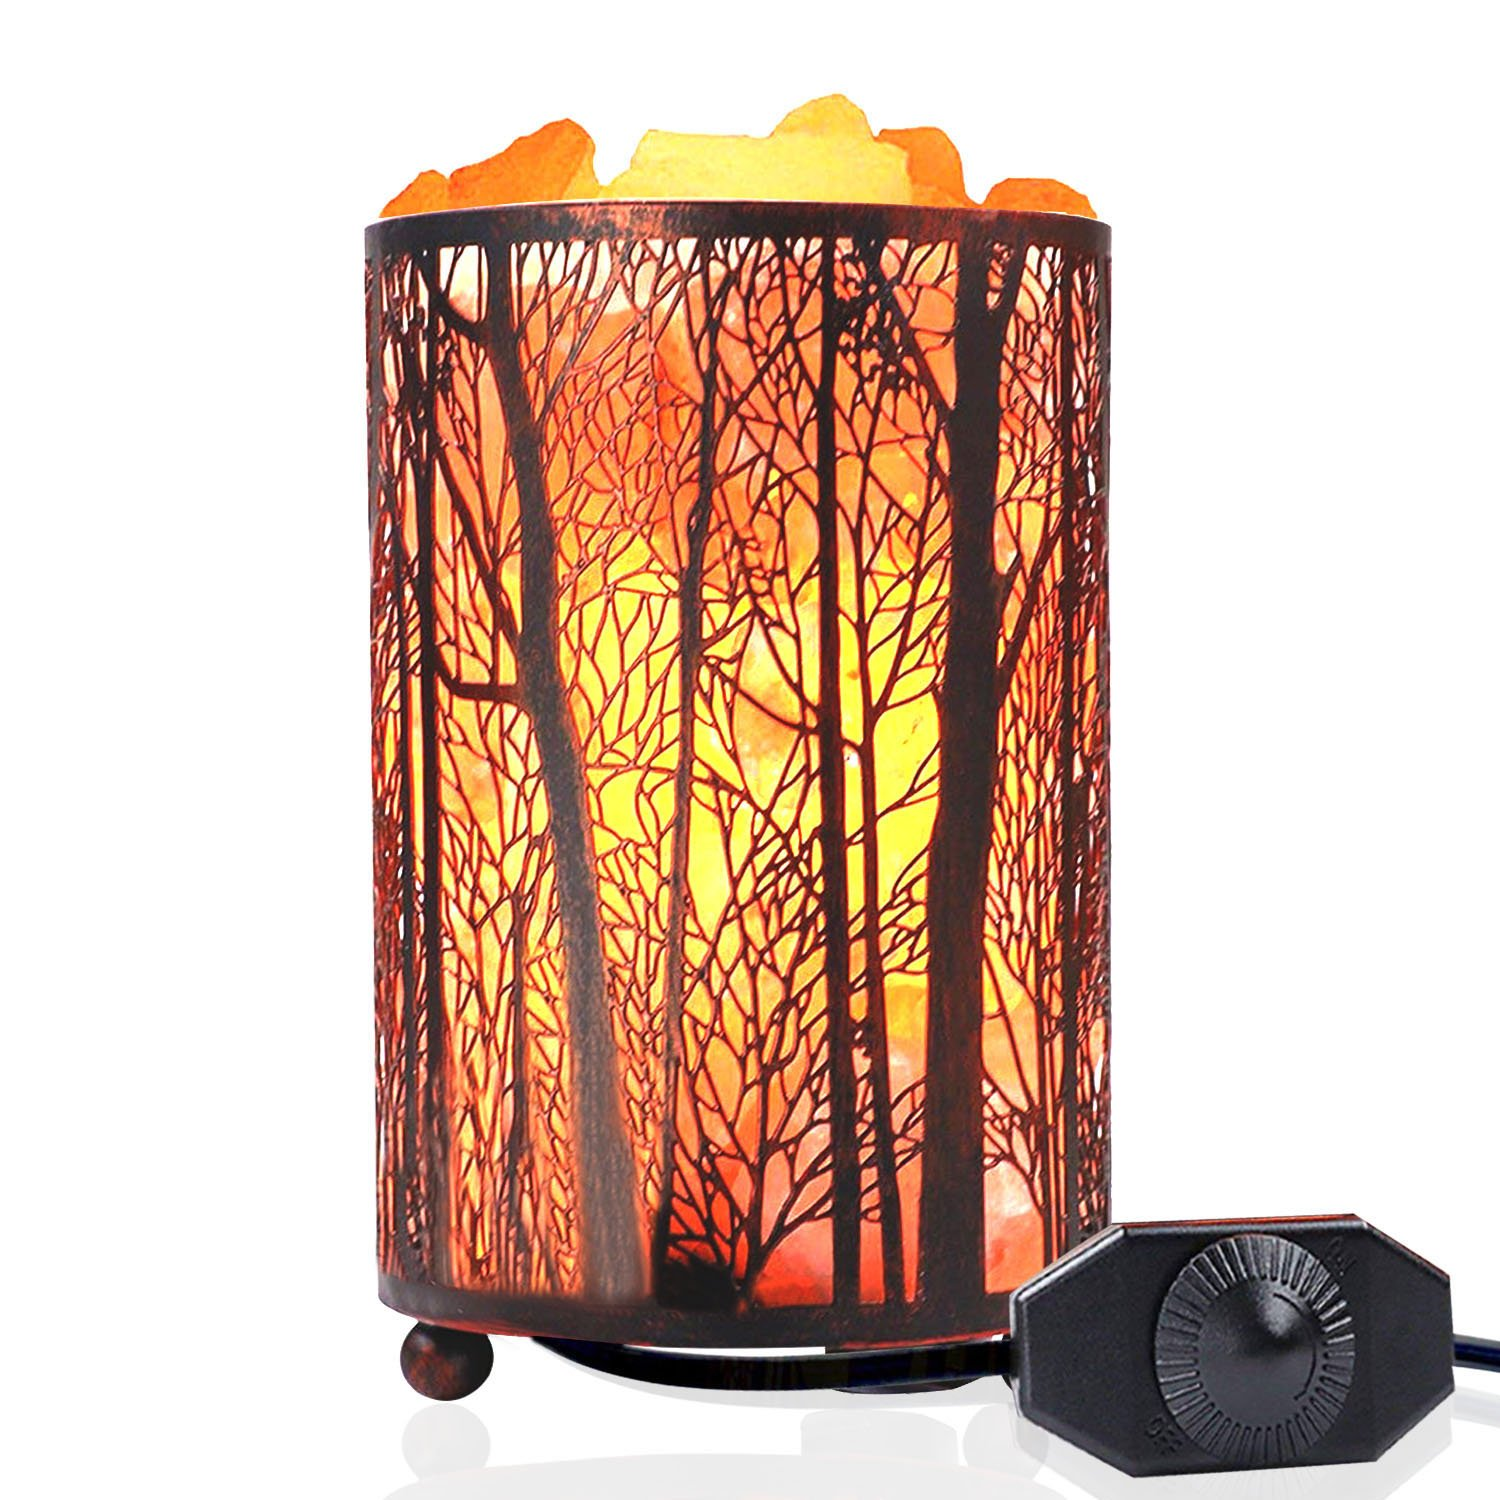 Natural Himalayan Salt Lamp,Air Purifying Pink Salt Rock Lamp Night Light in Forest Design Metal Basket with Dimmer Switch (4.1 x 6.5